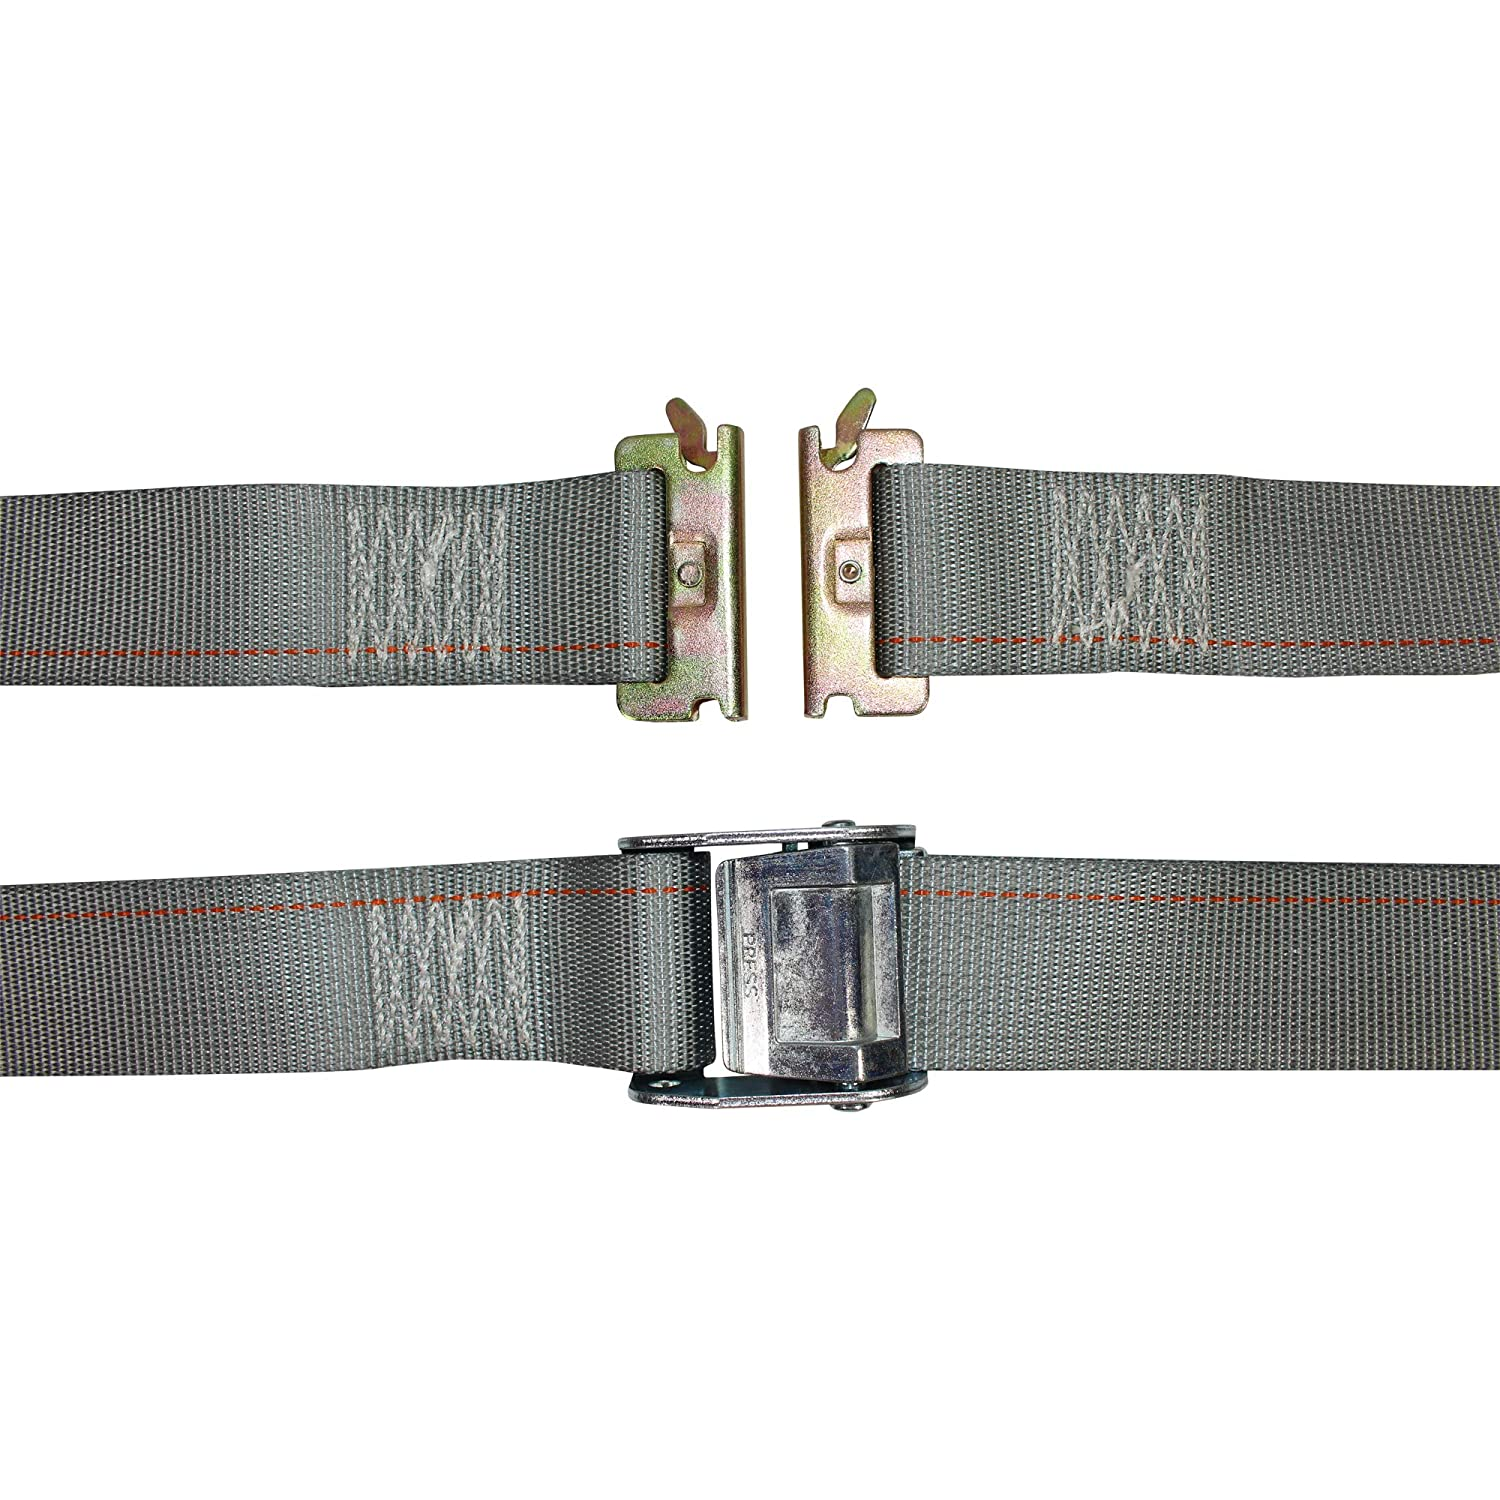 E-Track Ratcheting Cargo Strap SGT KNOTS Flatbed 2 in x 16 ft Strap with Cam - 10 Pack - Gray ETrack Lashing Tie Down for Loading Truck Bed E Track Heavy Duty Adjustable Cam Buckle Straps